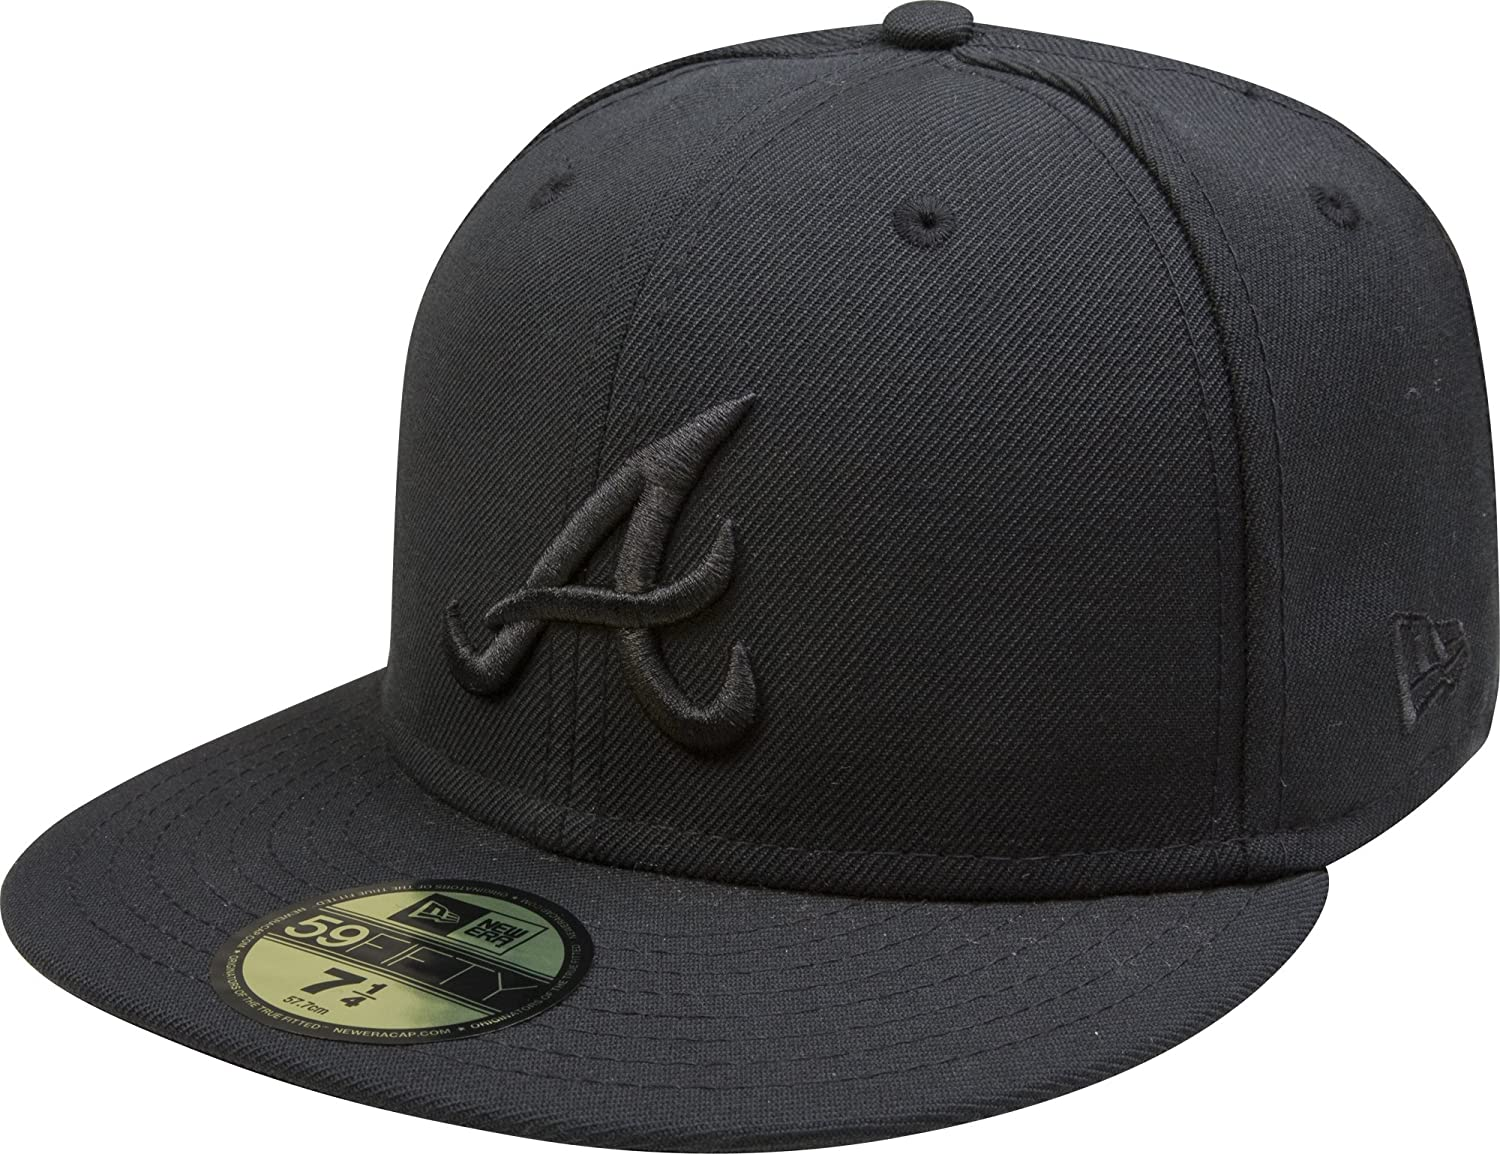 MLB BLACK ON BLACK Atlanta Braves New Era 59Fifty Cap